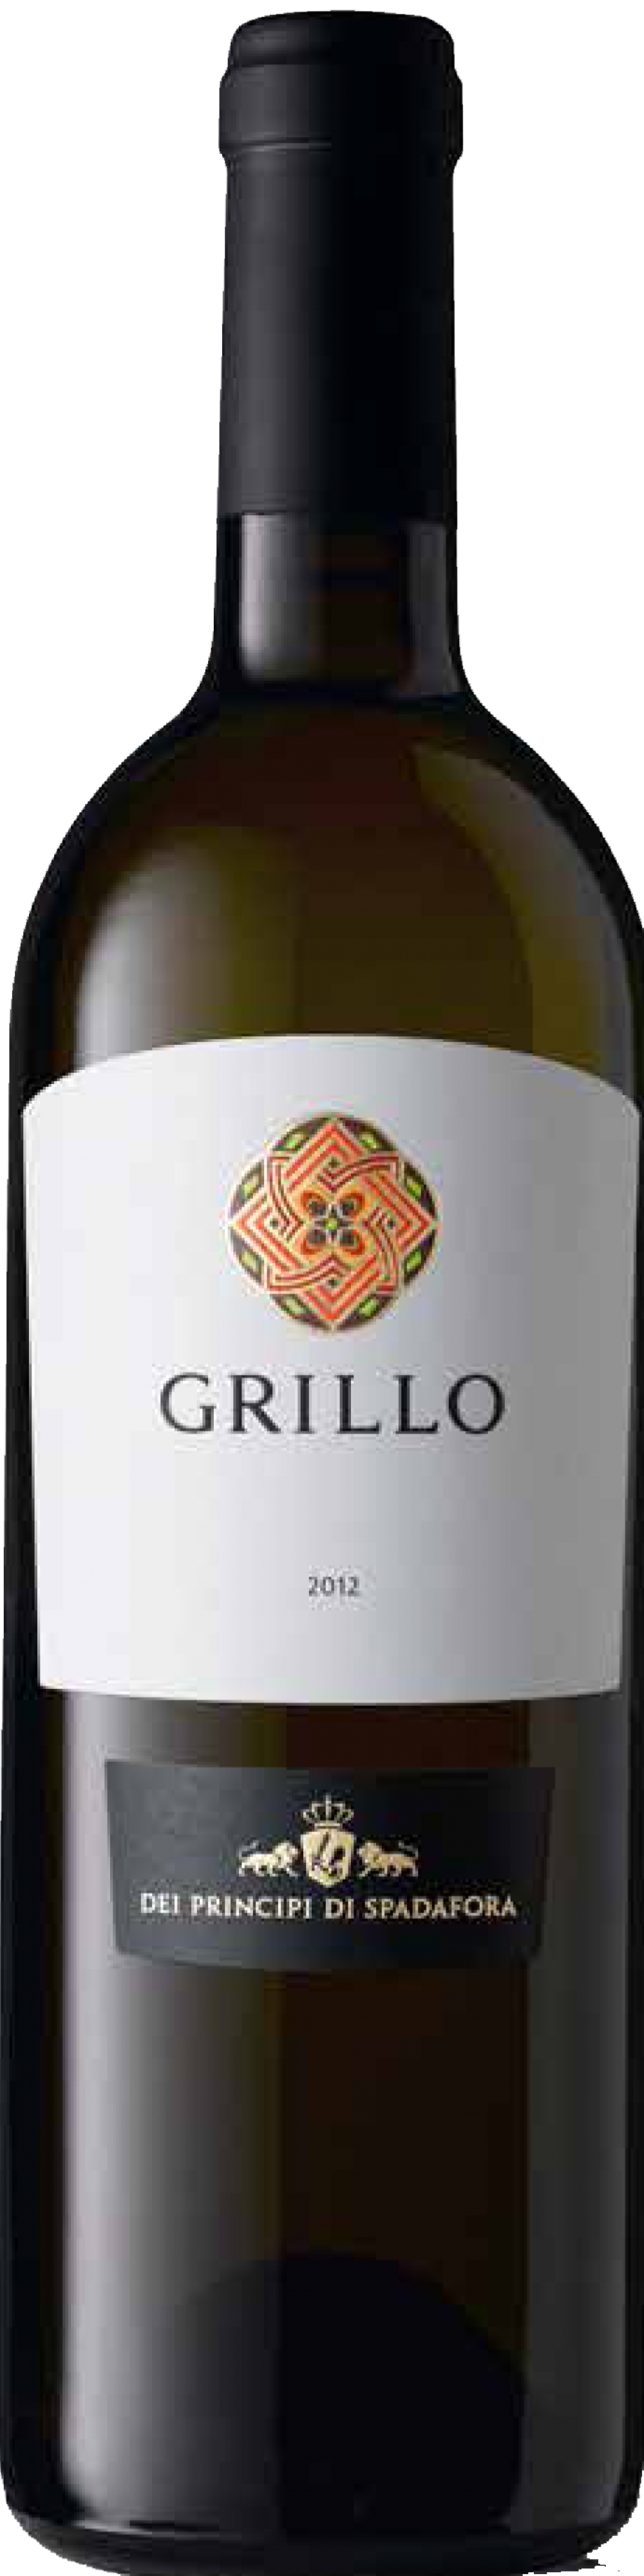 files/images/wines/Italy/spadafora/grillo 2012.png